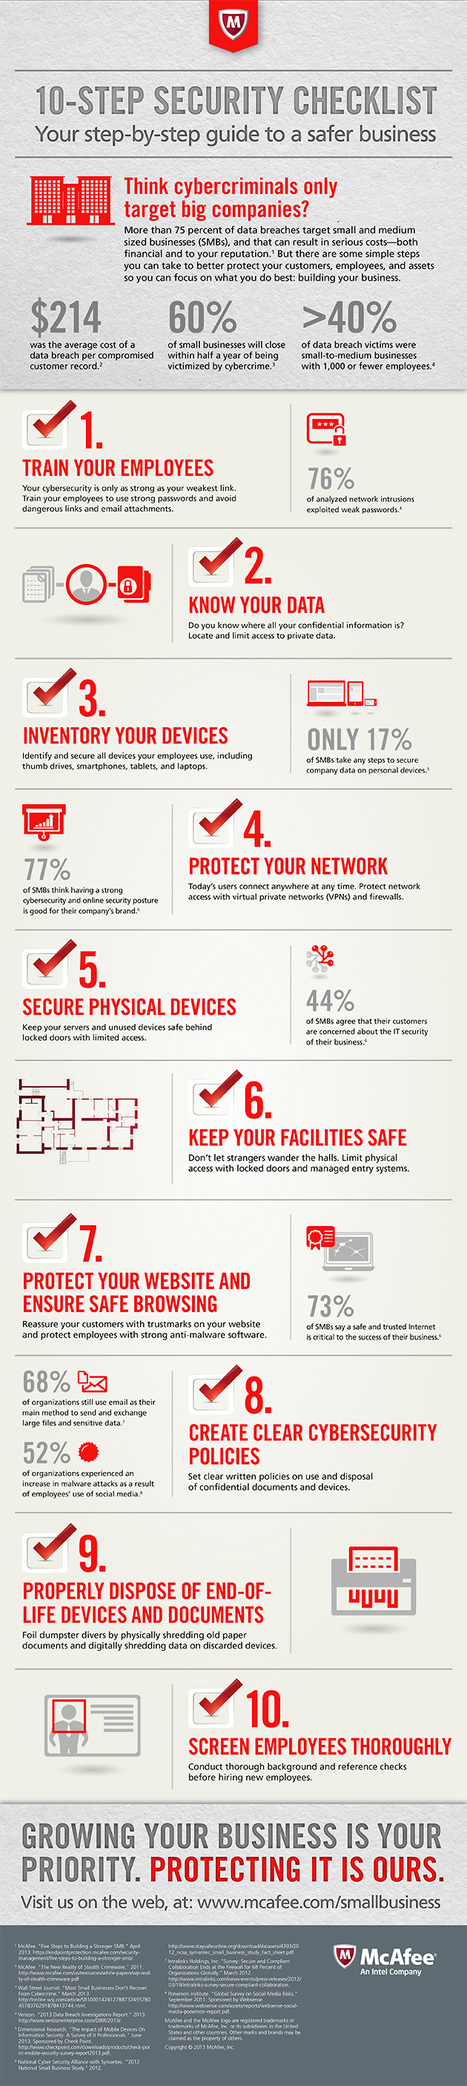 How to keep your business safe – the one checklist all SMBs should have [Infographic] | MishMash | Scoop.it